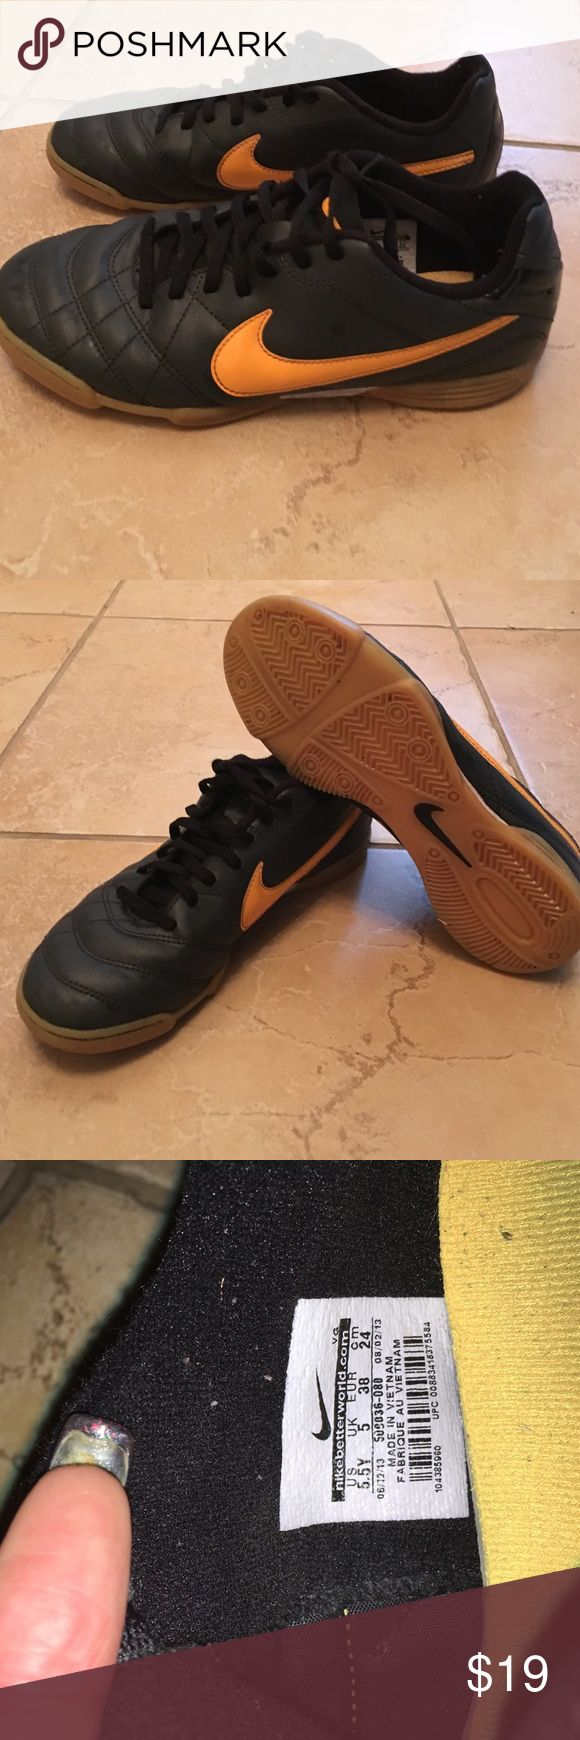 Boys 7.5 Nike indoor soccer shoes 7.5 indoor Soccer shoes ⚽️ Nike Shoes Sneakers